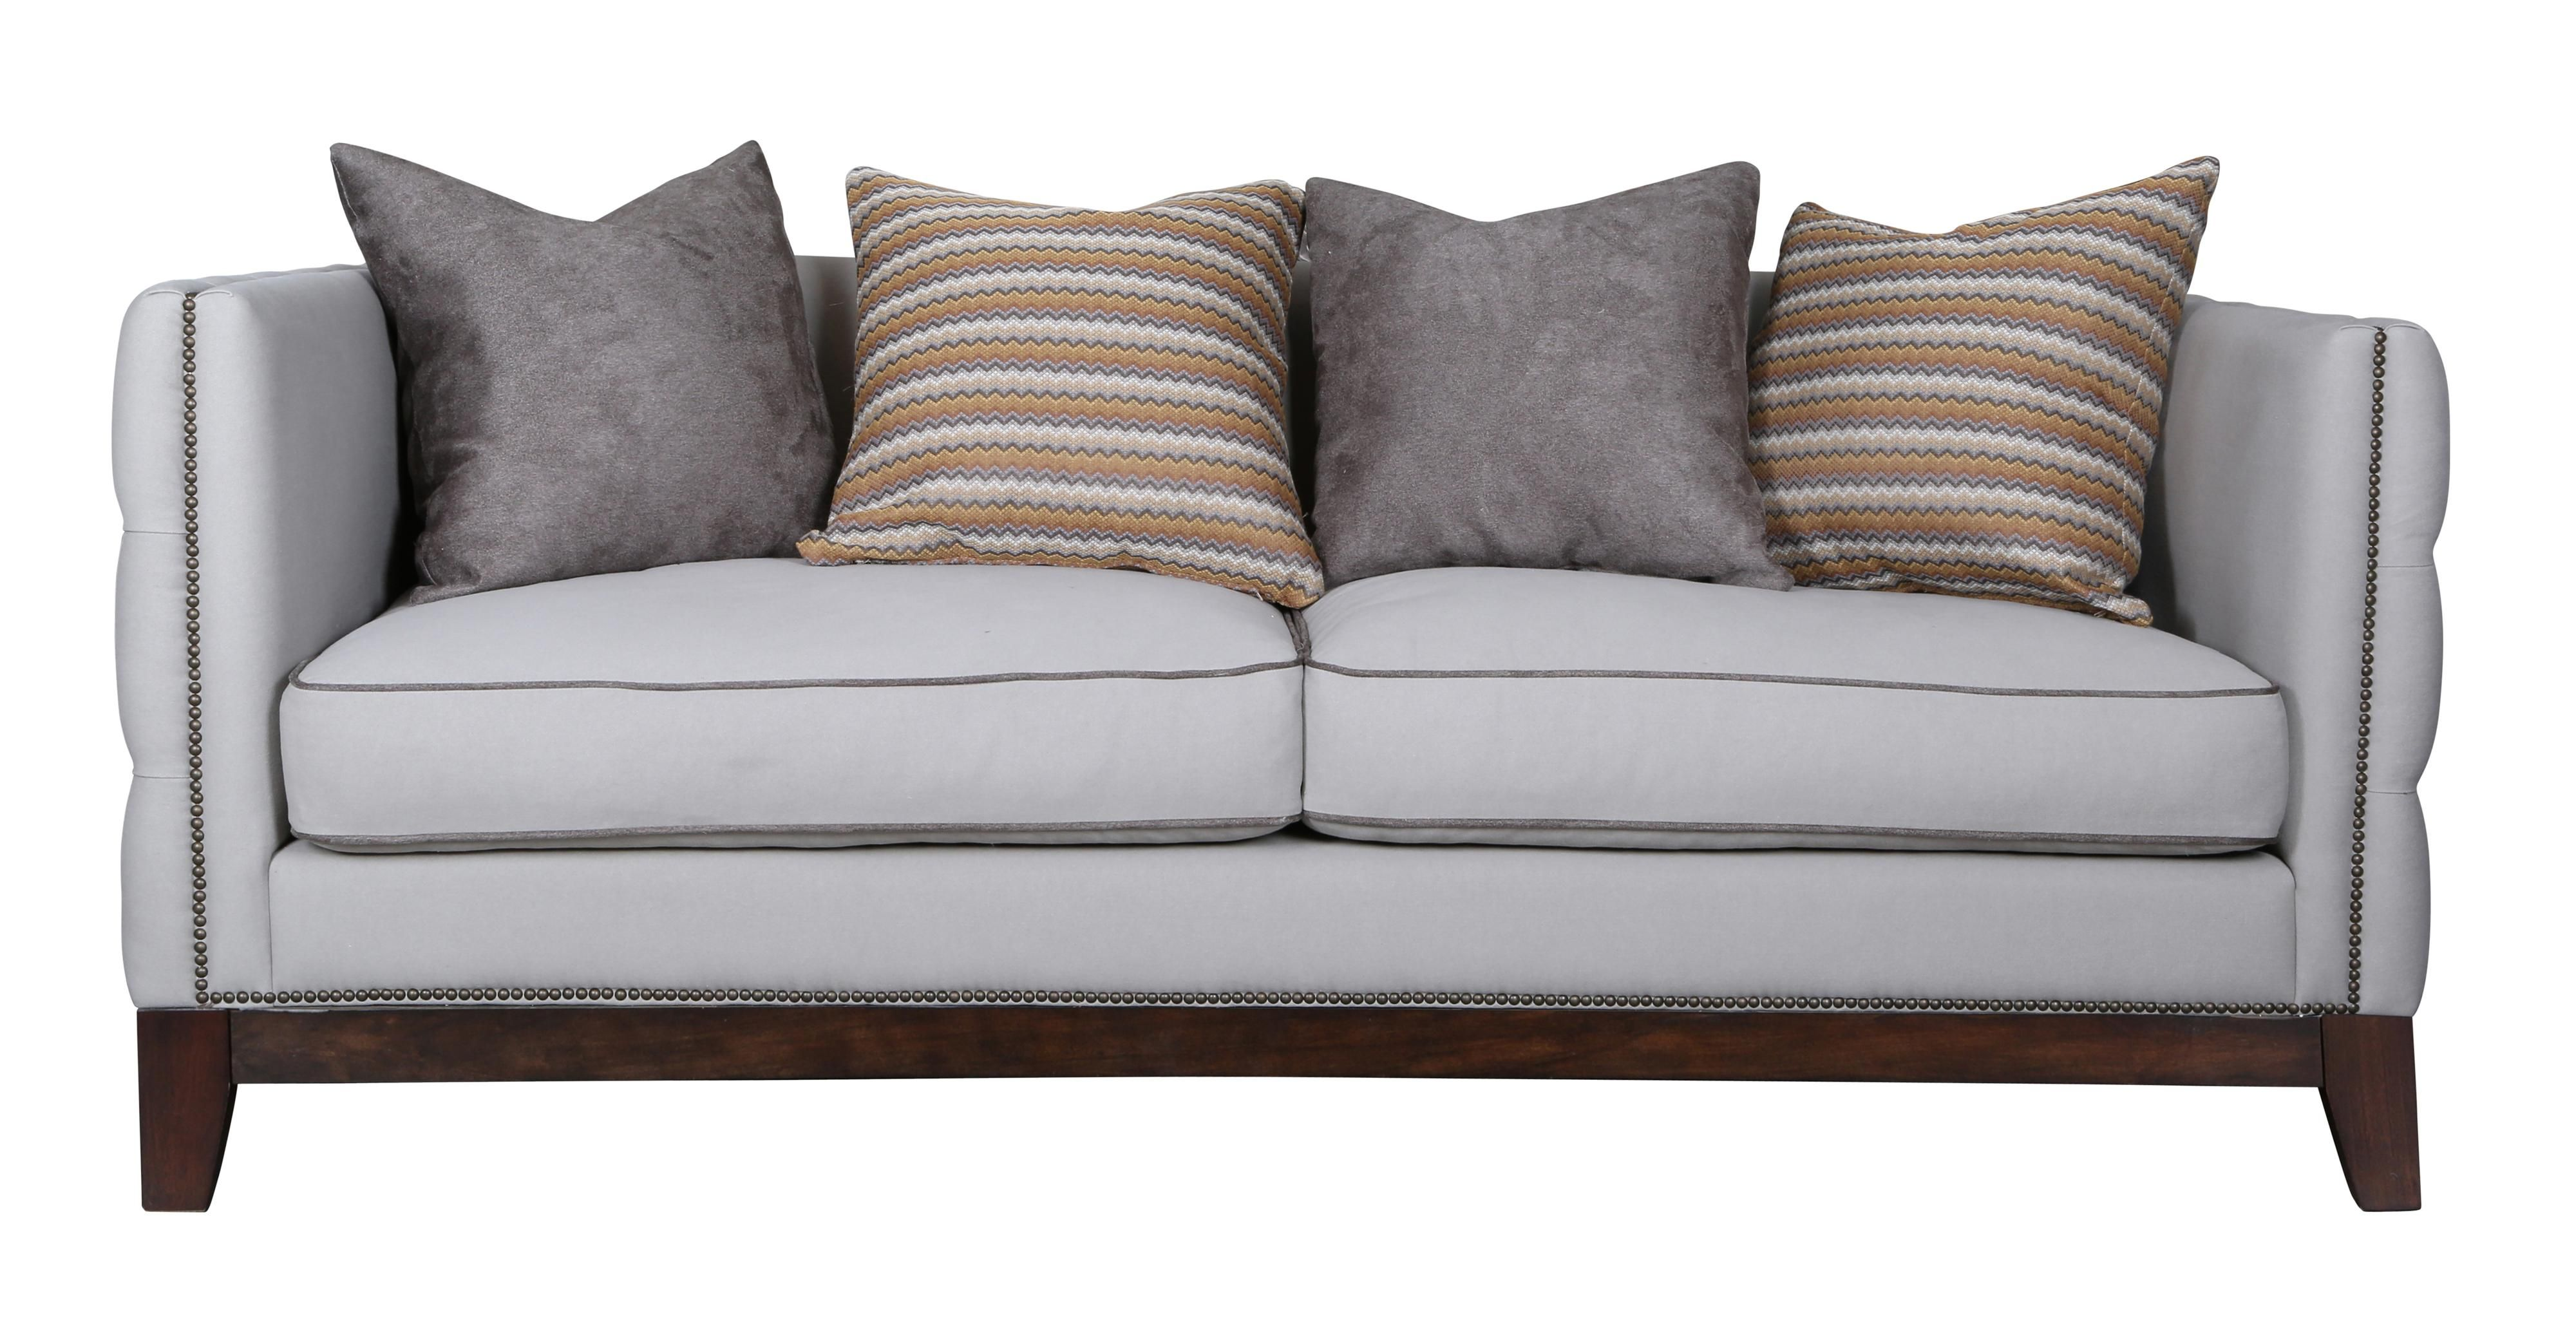 Contemporary Sofa With Reversible Seat Cushion And Tufted Outside Arms